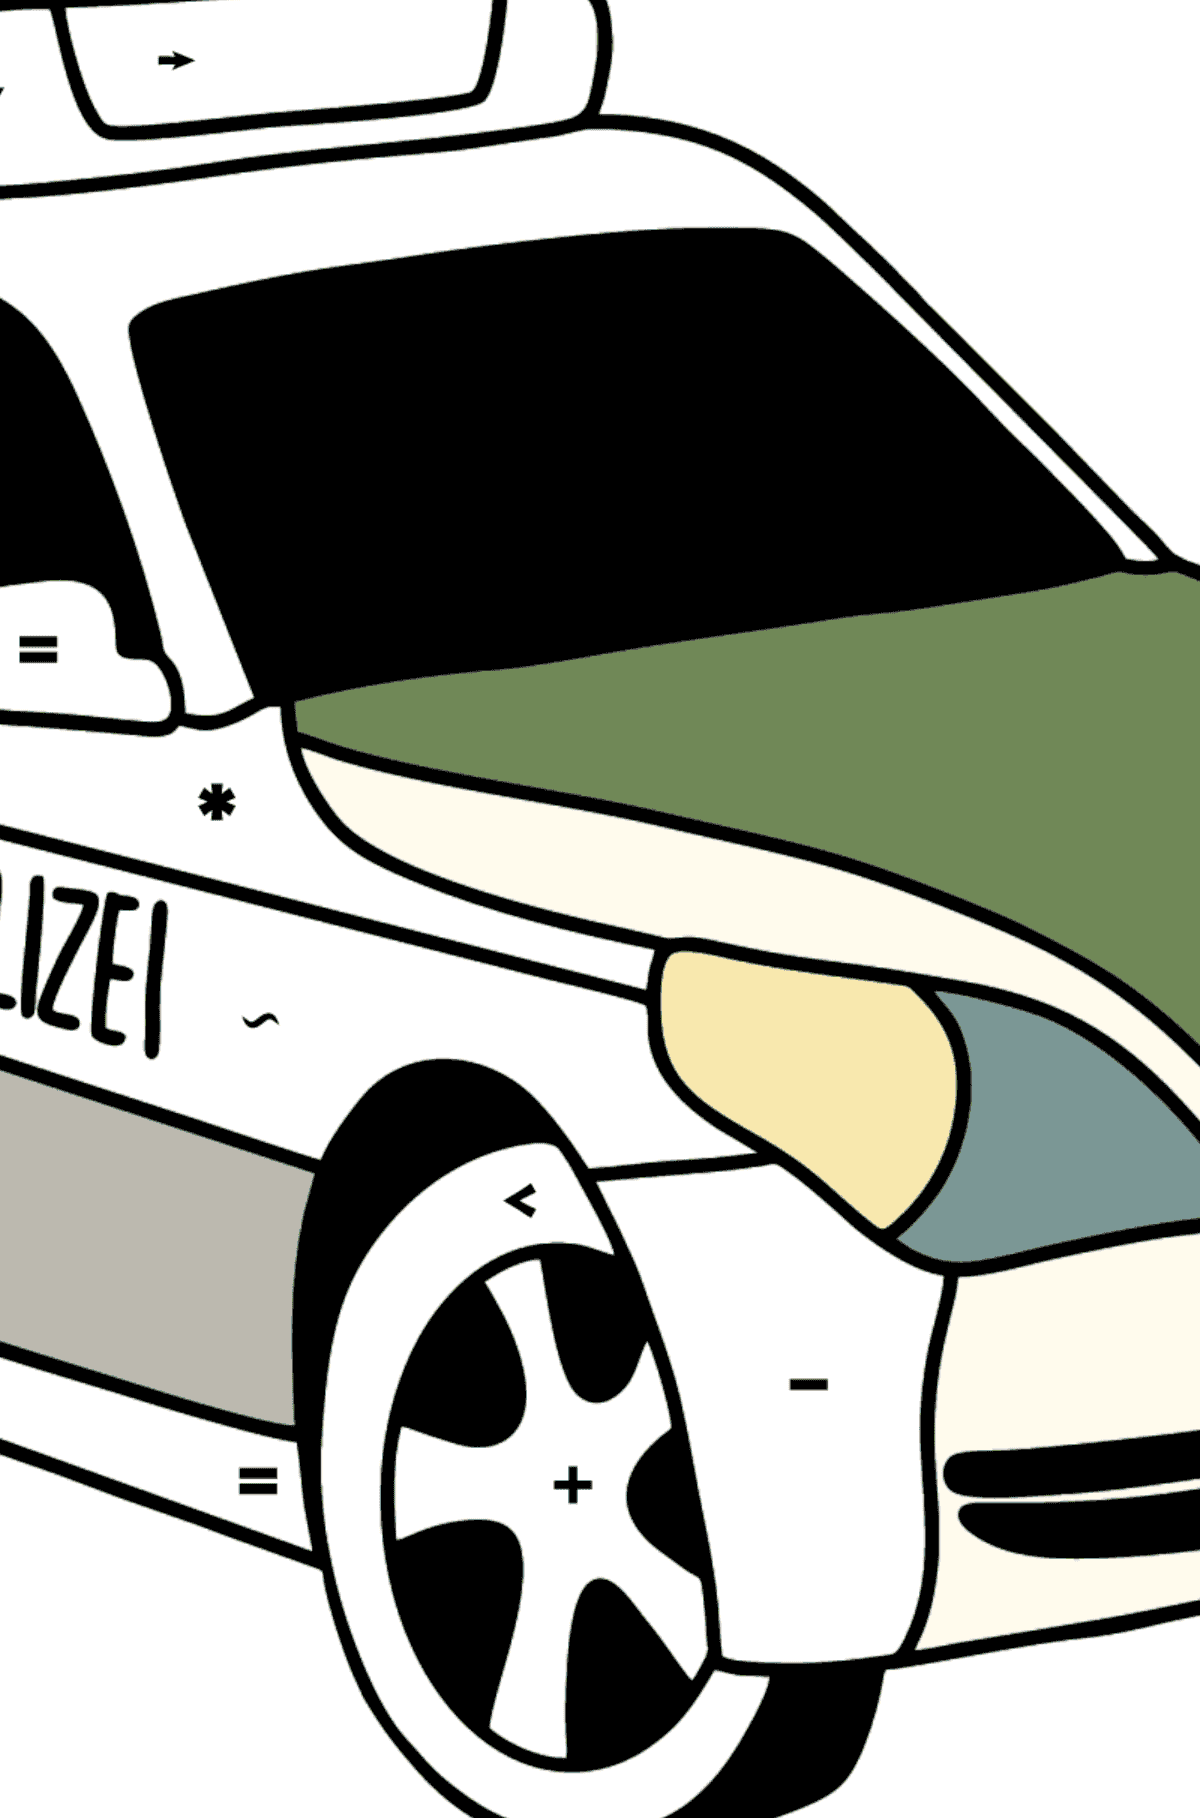 Police Car in Germany coloring page - Coloring by Symbols for Kids